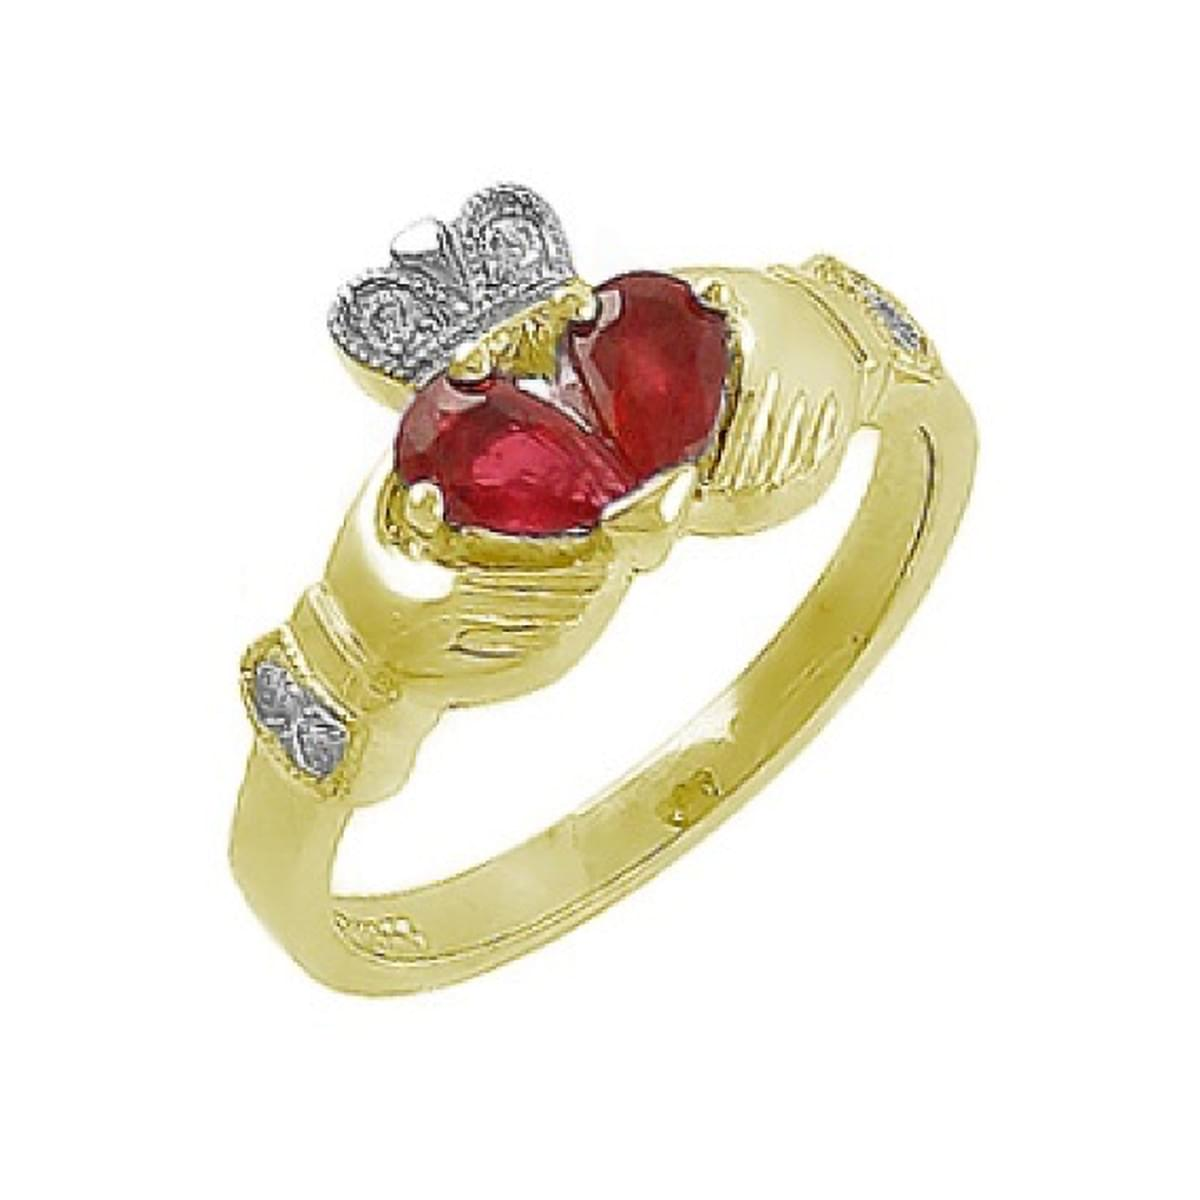 Pearshape Ruby And Diamond Claddagh Ring